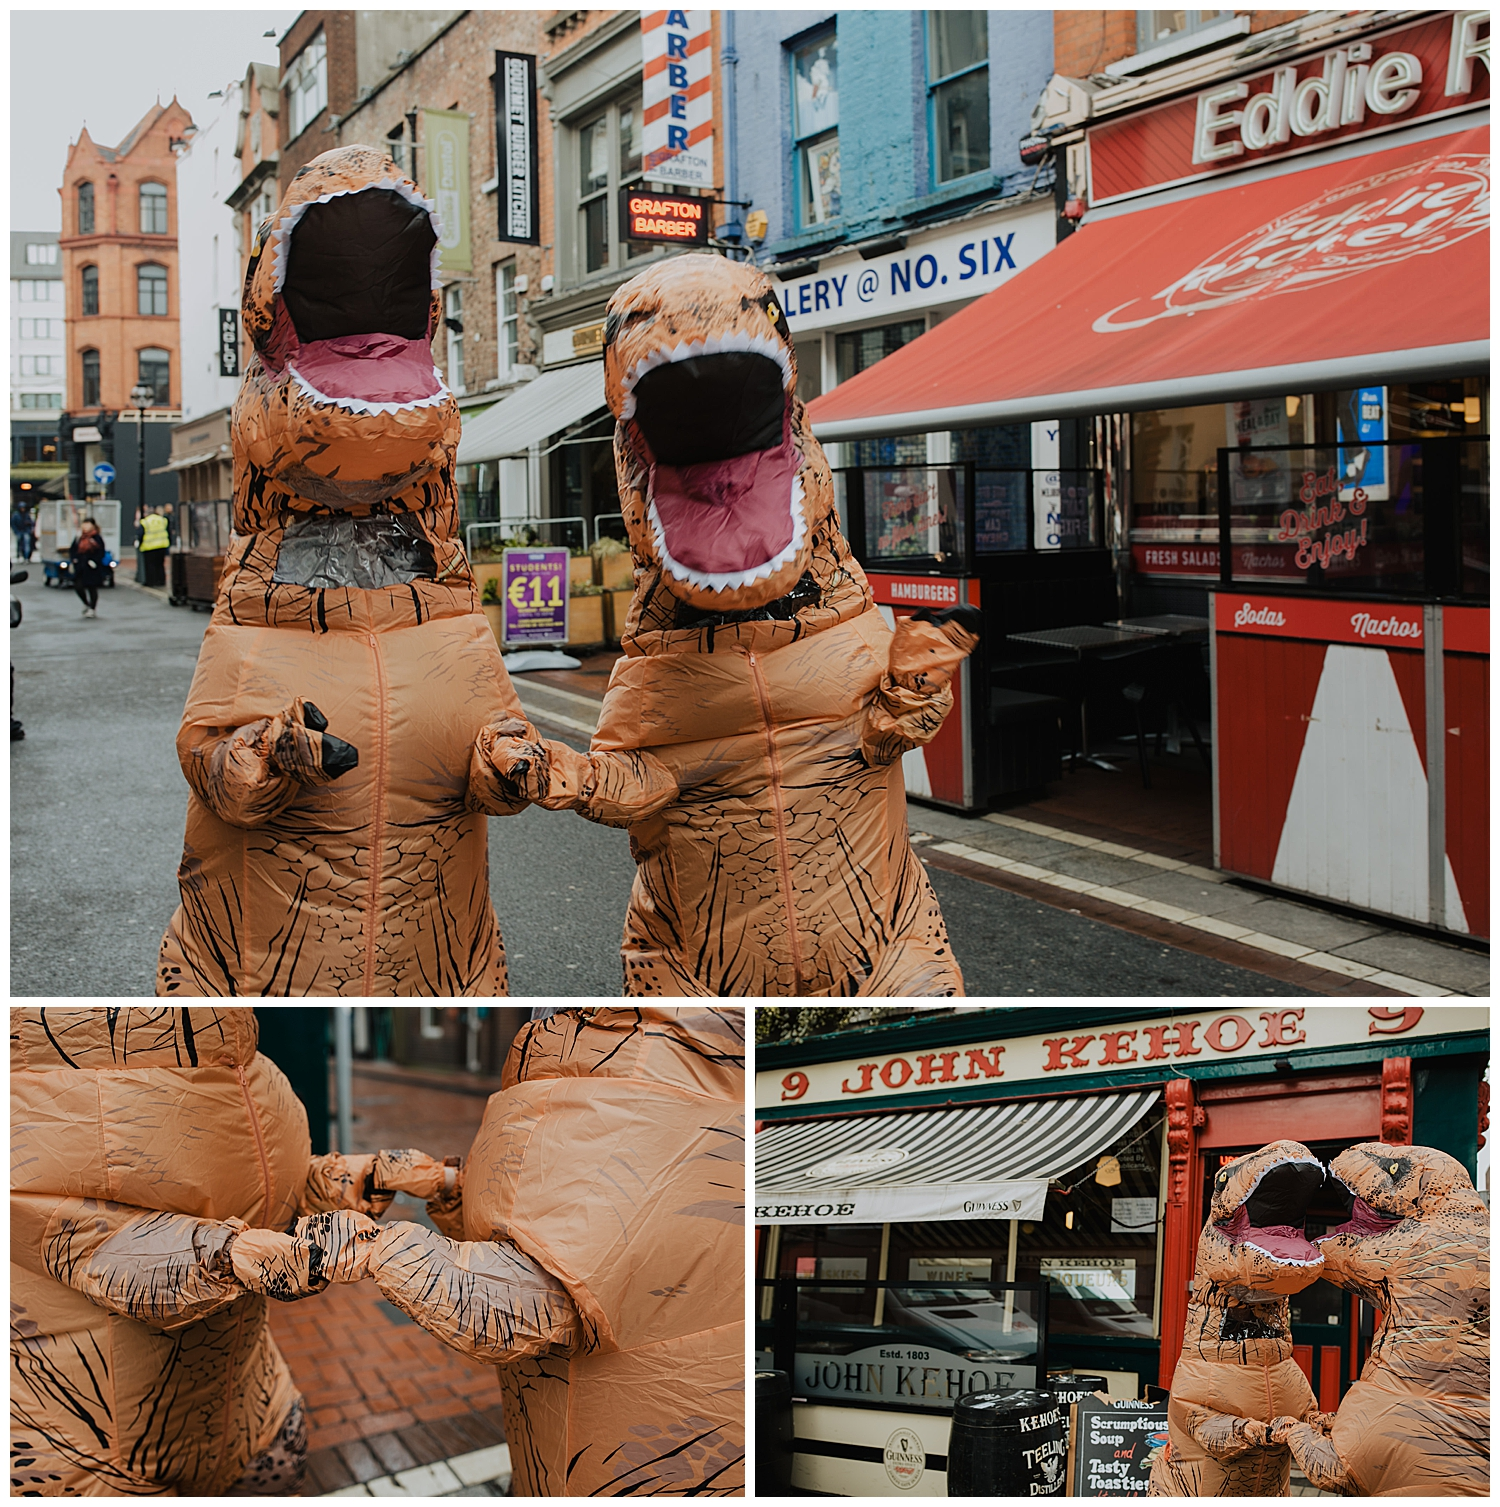 m-m-t-rex-engagement-session-wedding-photographer-dublin-ireland-livia-figueiredo-68.jpg